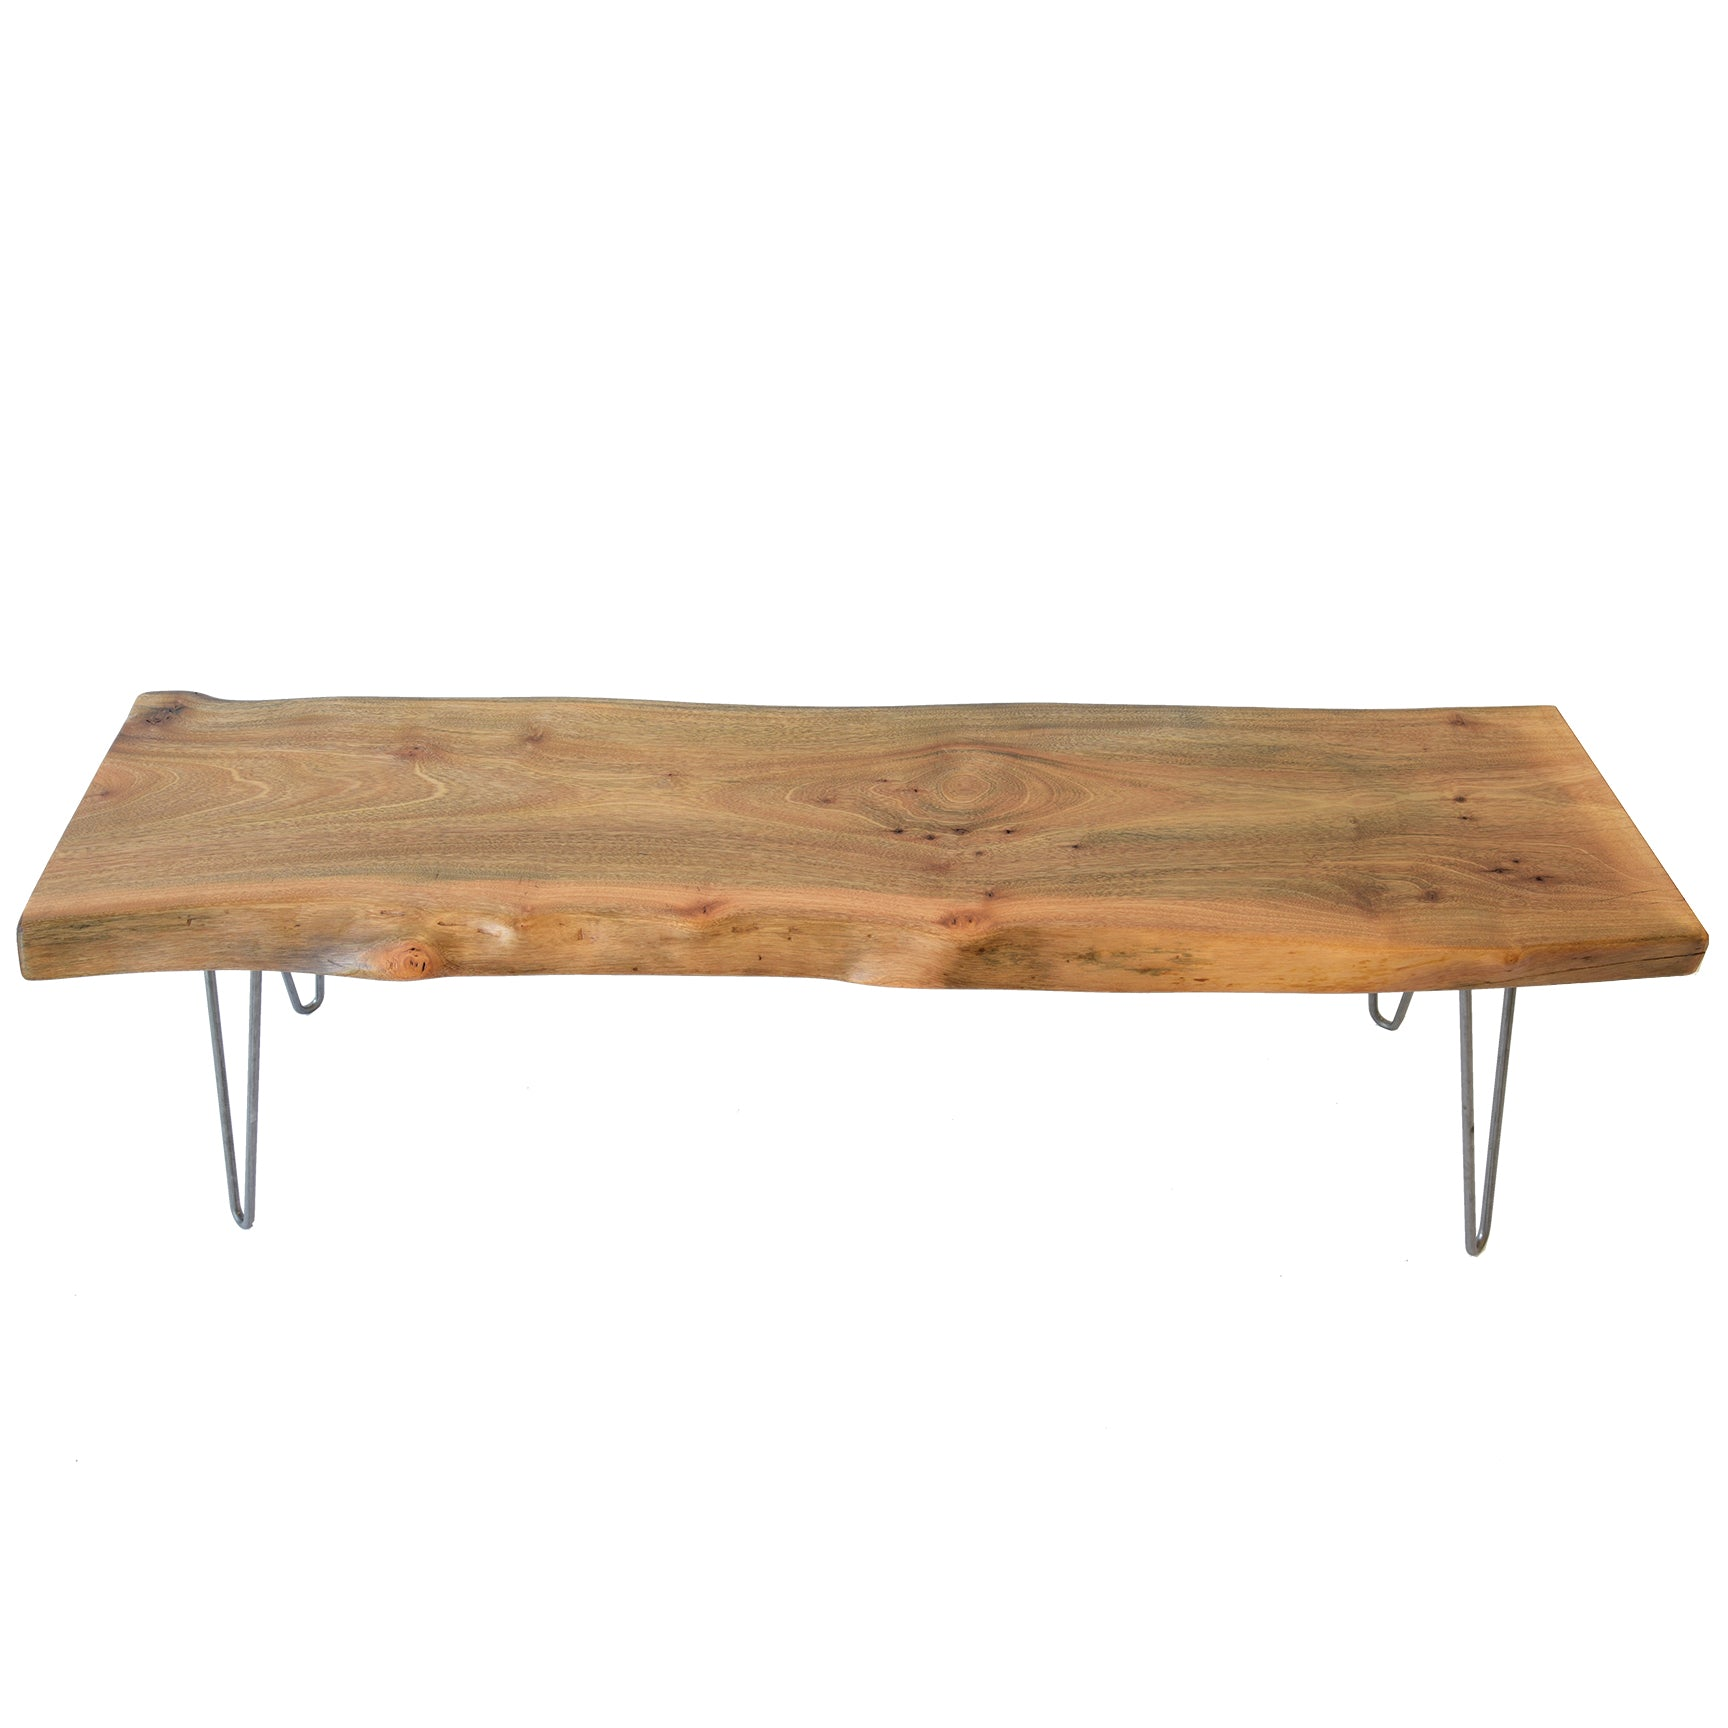 Light Natural Wood Reclaimed Live Edge Slab Coffee Table Woodwaves